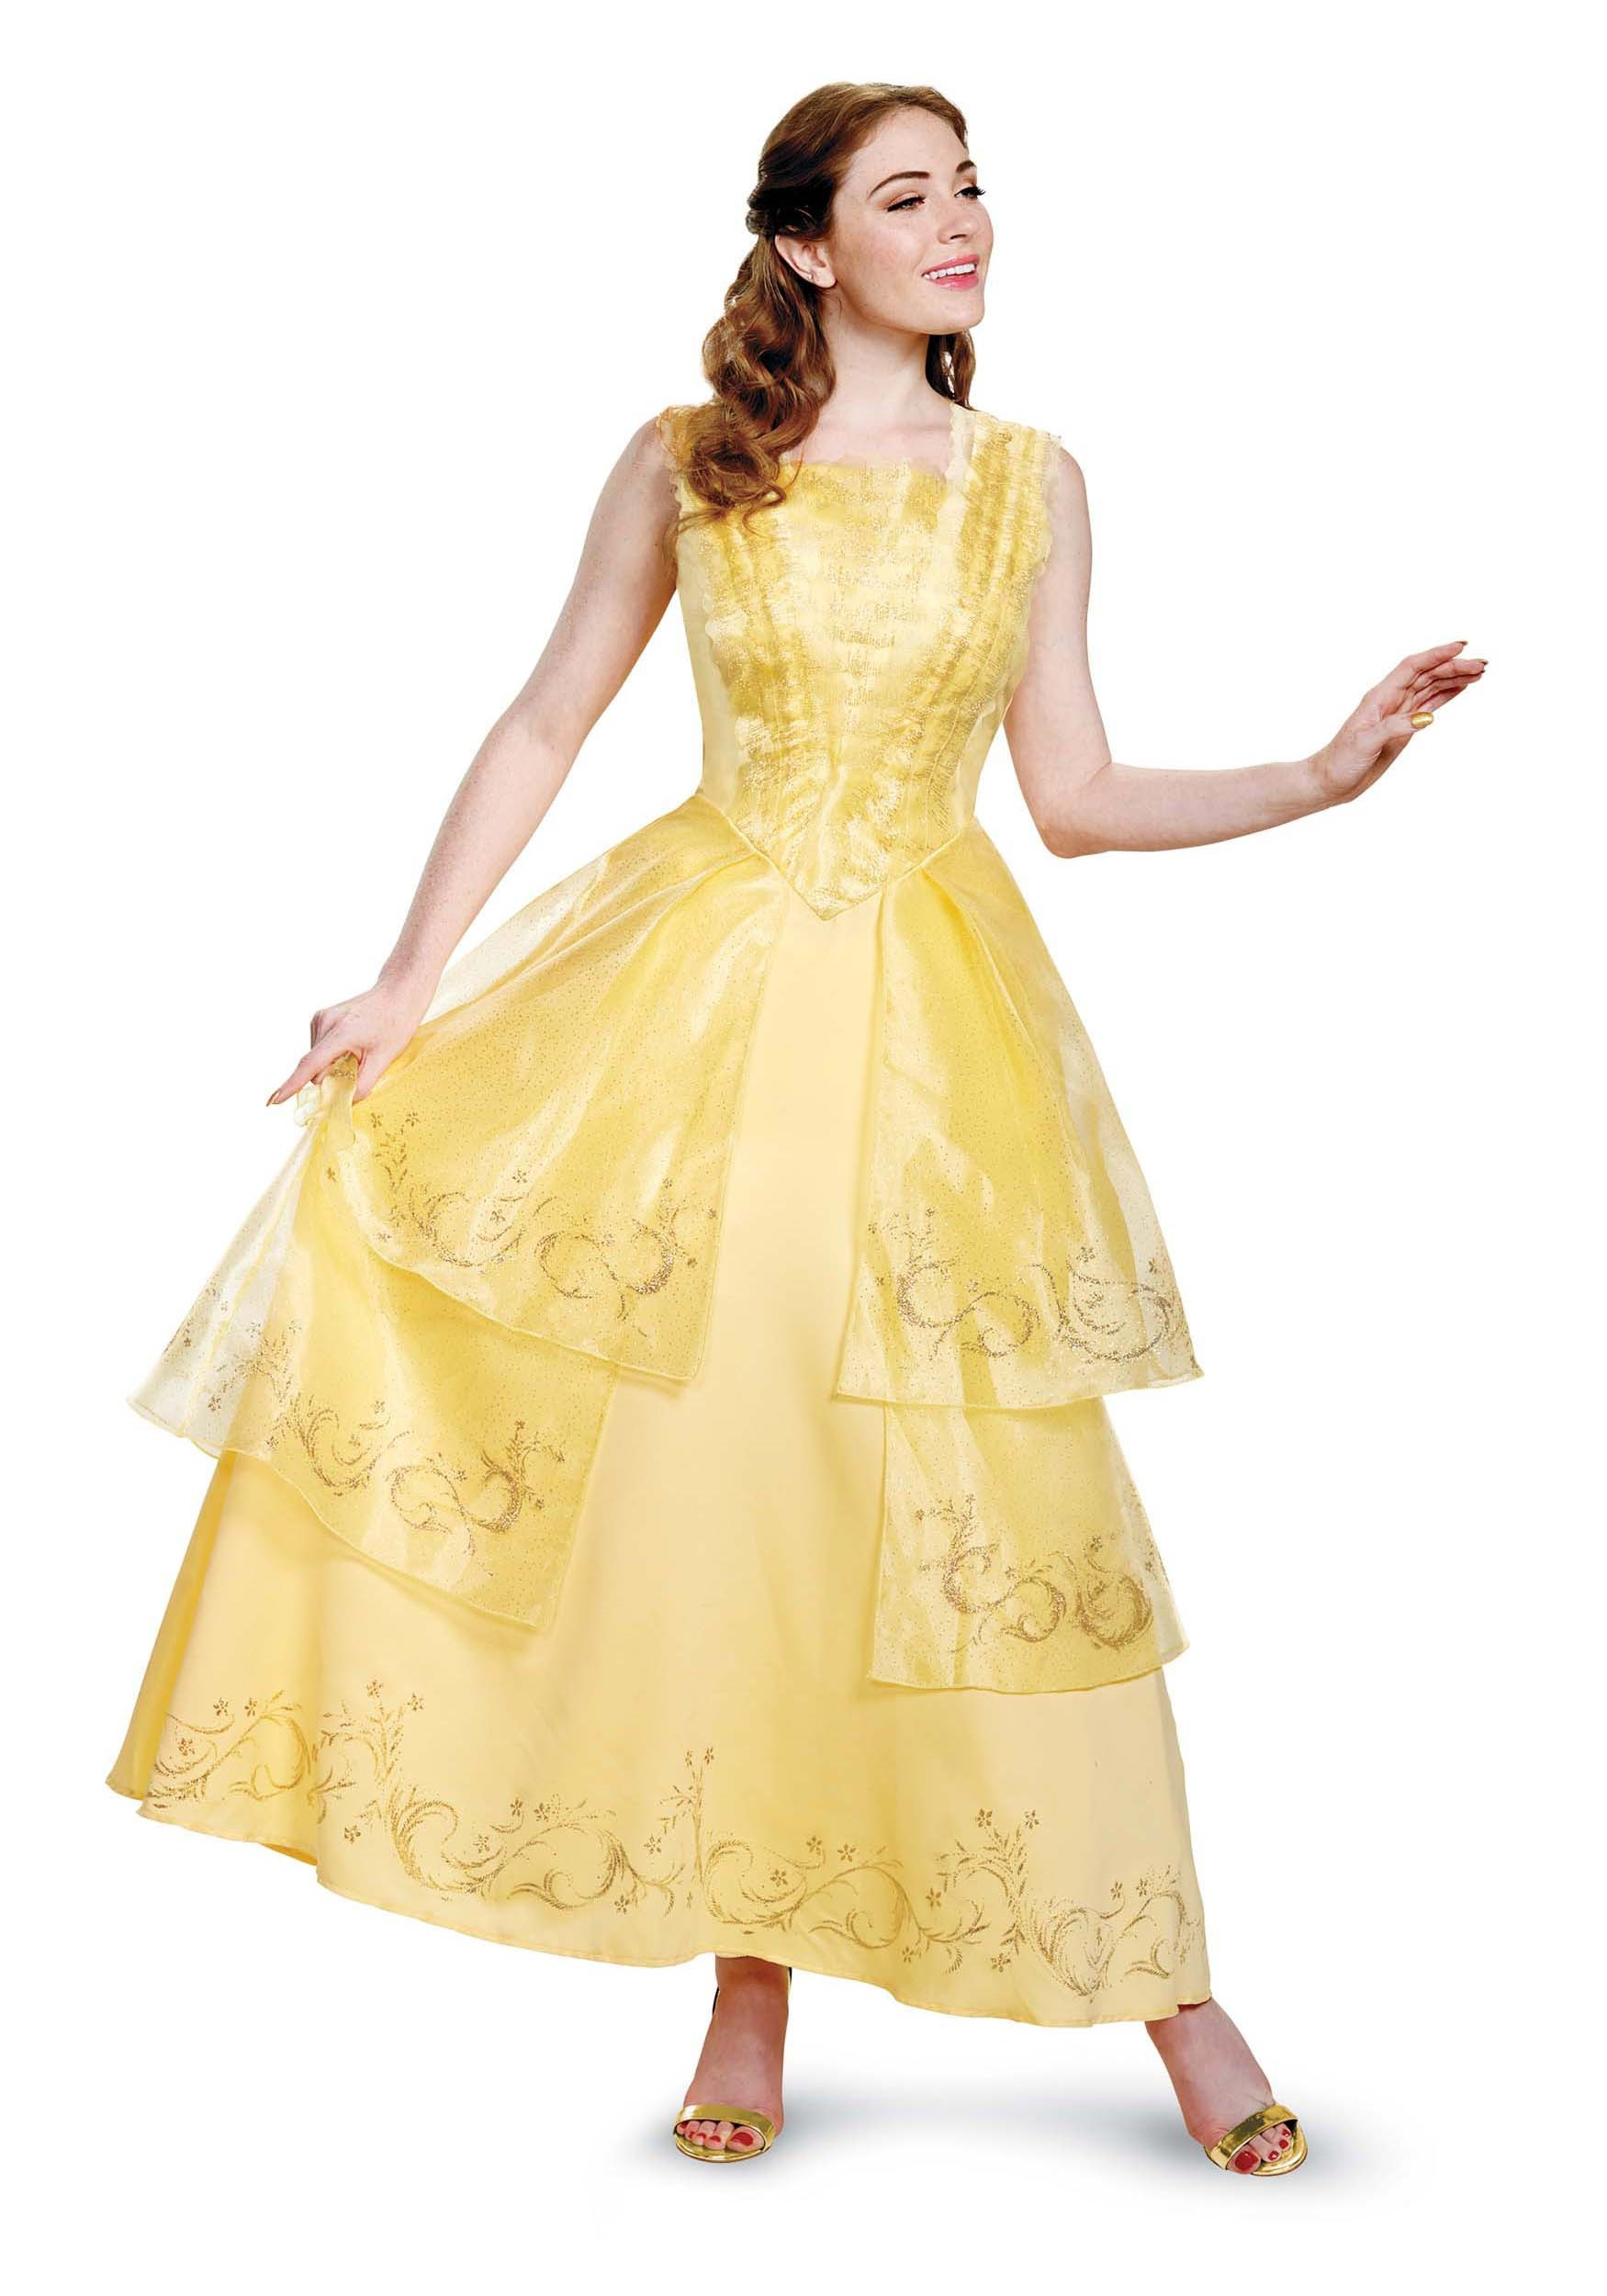 Women's Belle Ball Gown Prestige Costume